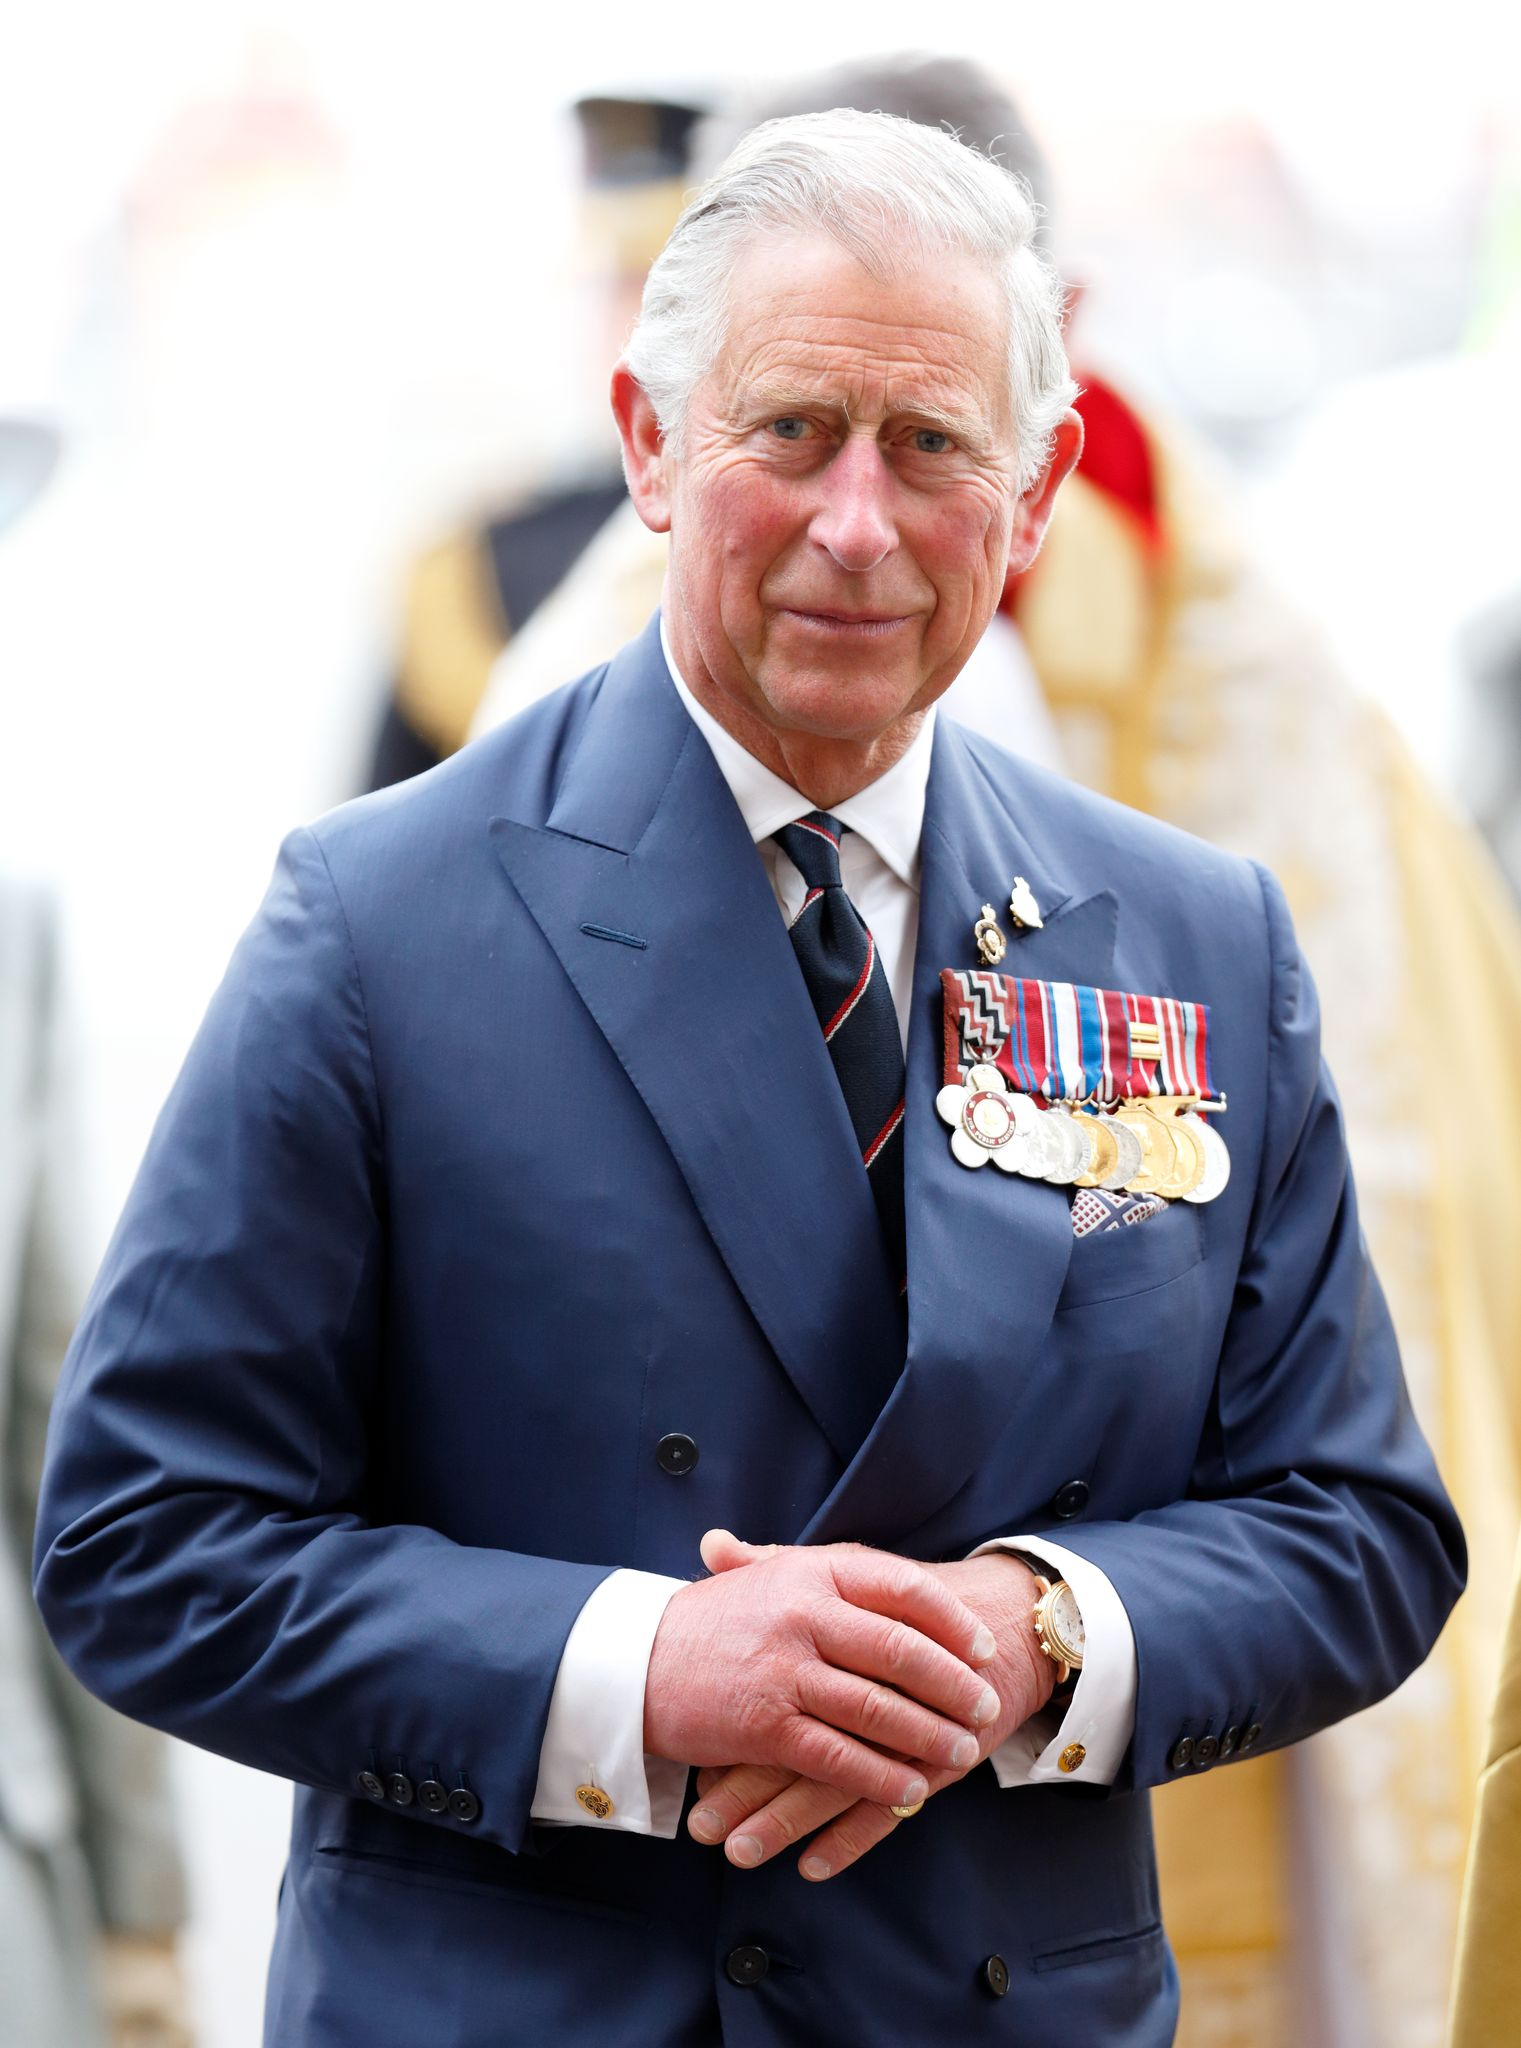 Prince Charles, Prince of Wales at a Service of Thanksgiving to mark the 70th Anniversary of VE Day at Westminster Abbey on May 10, 2015 in London, England | Photo: Getty Images